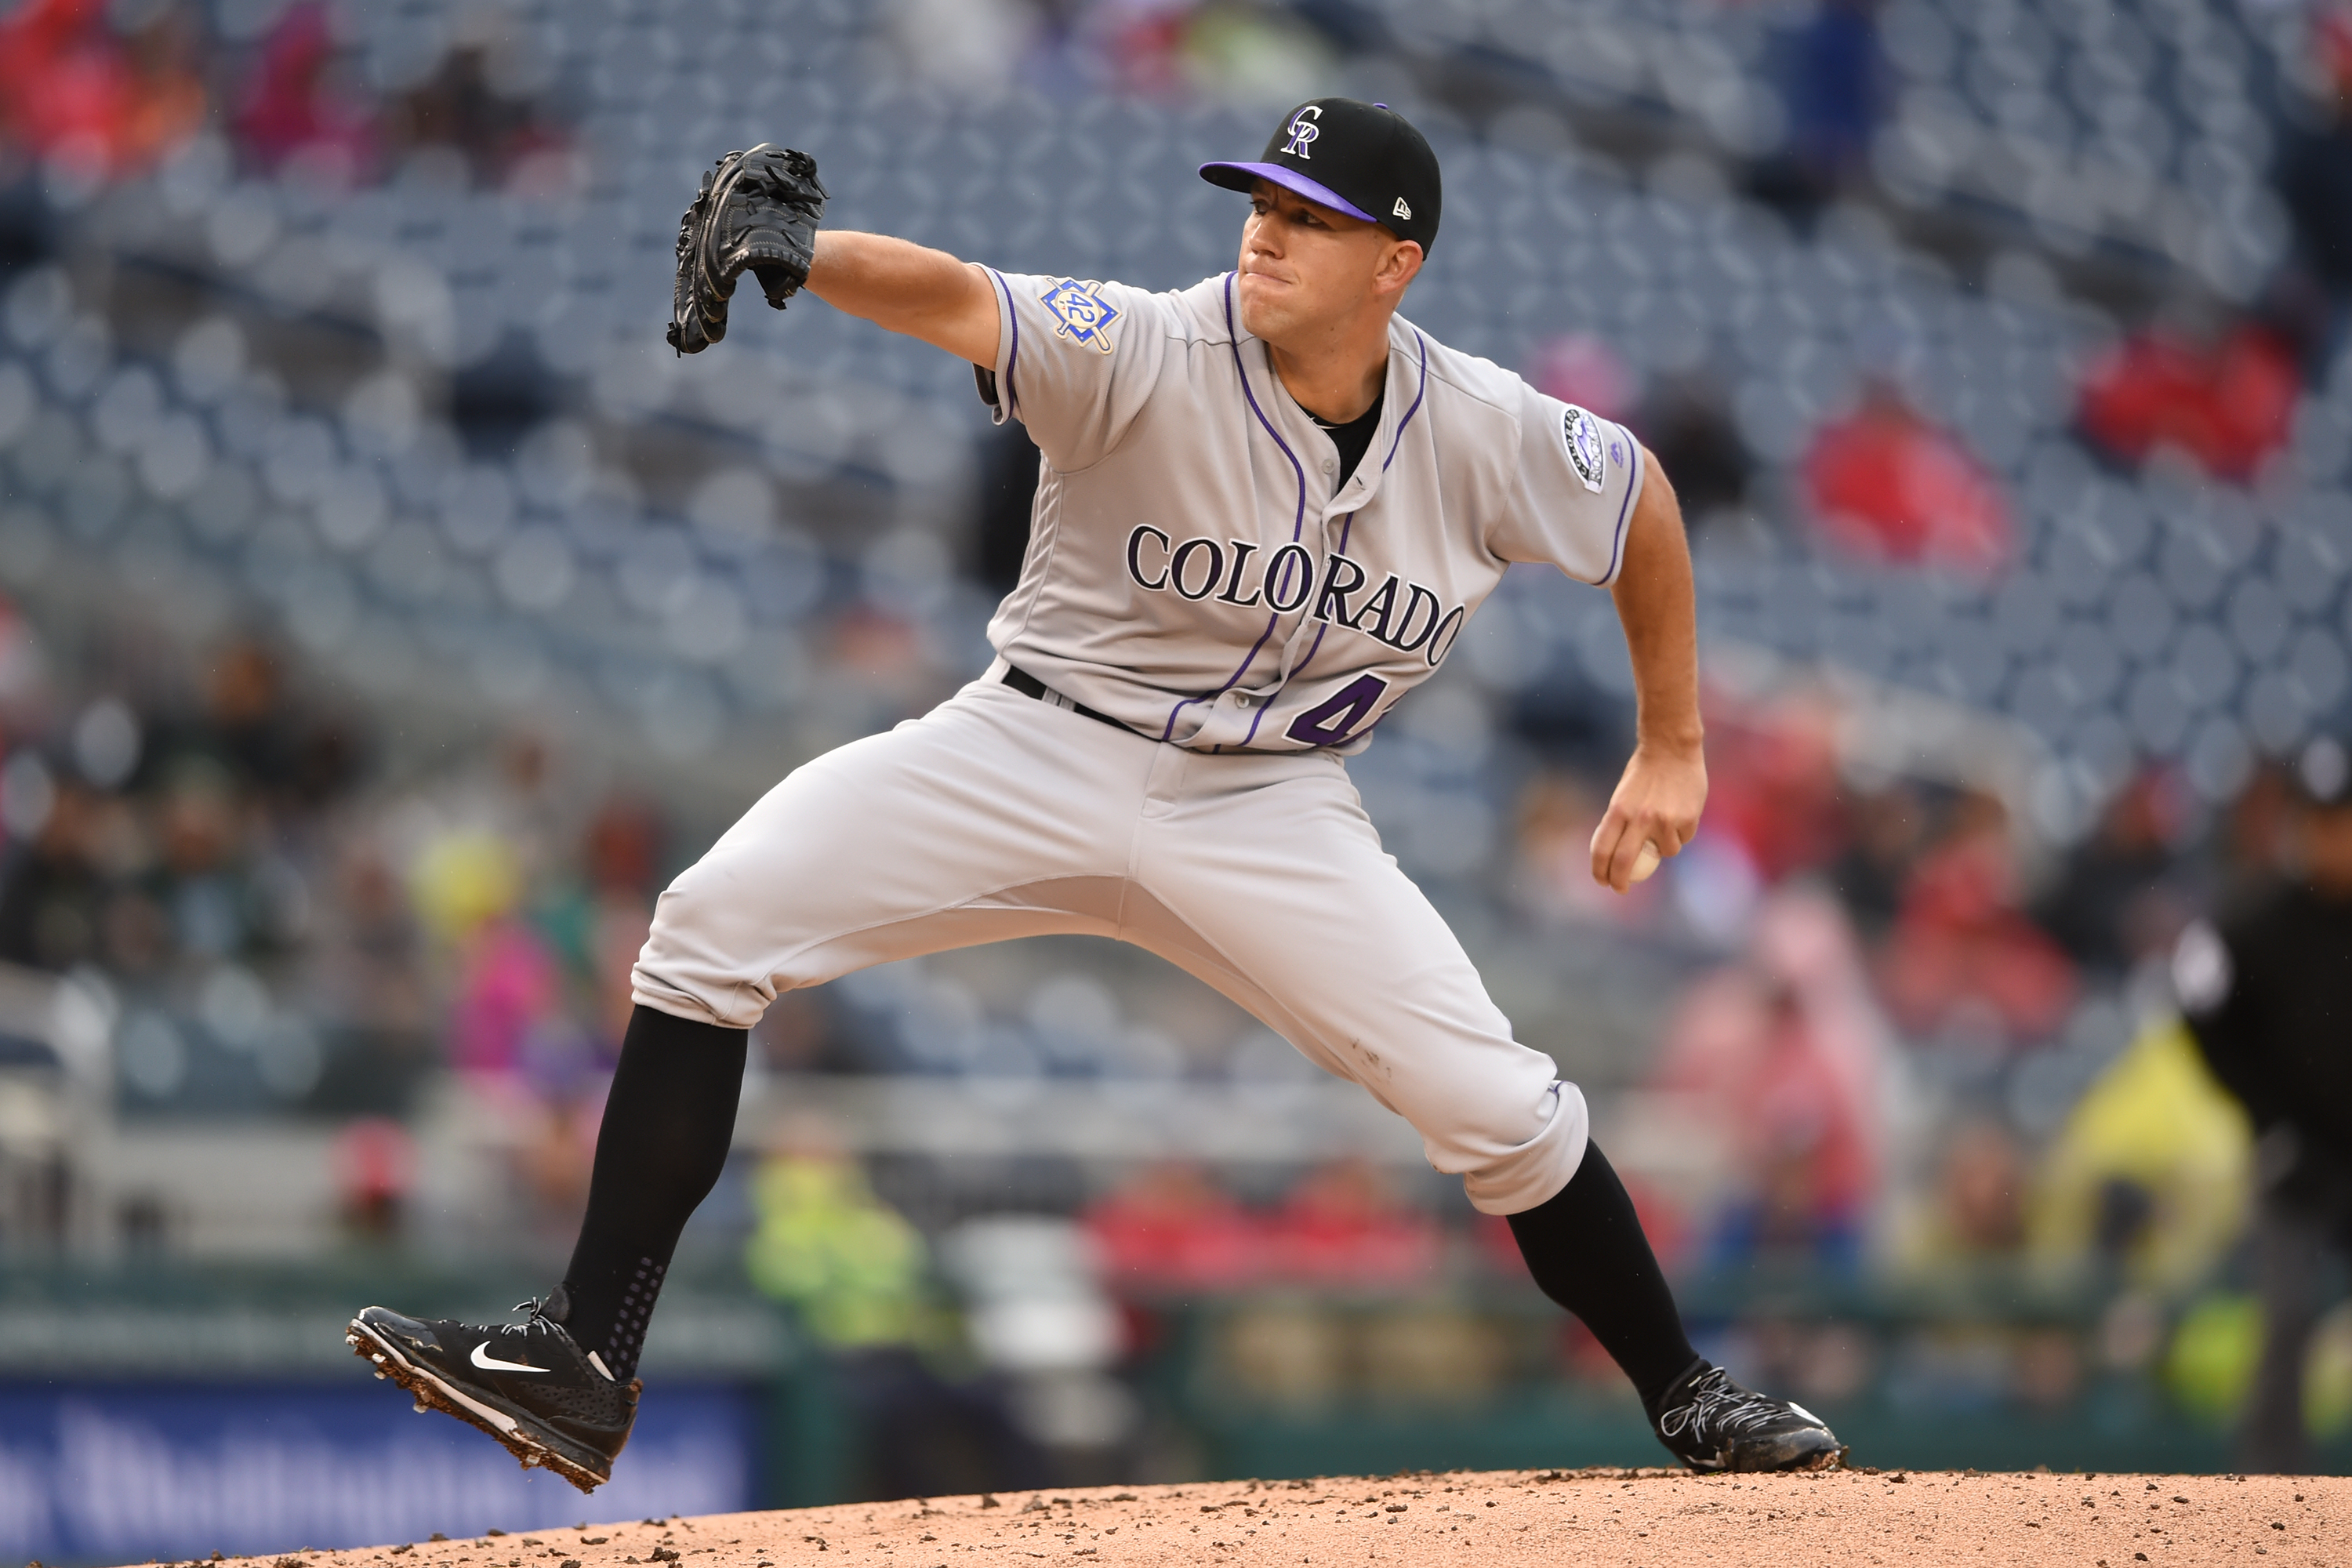 Chicago Cubs vs. Colorado Rockies: Odds, Analysis, MLB Betting Pick